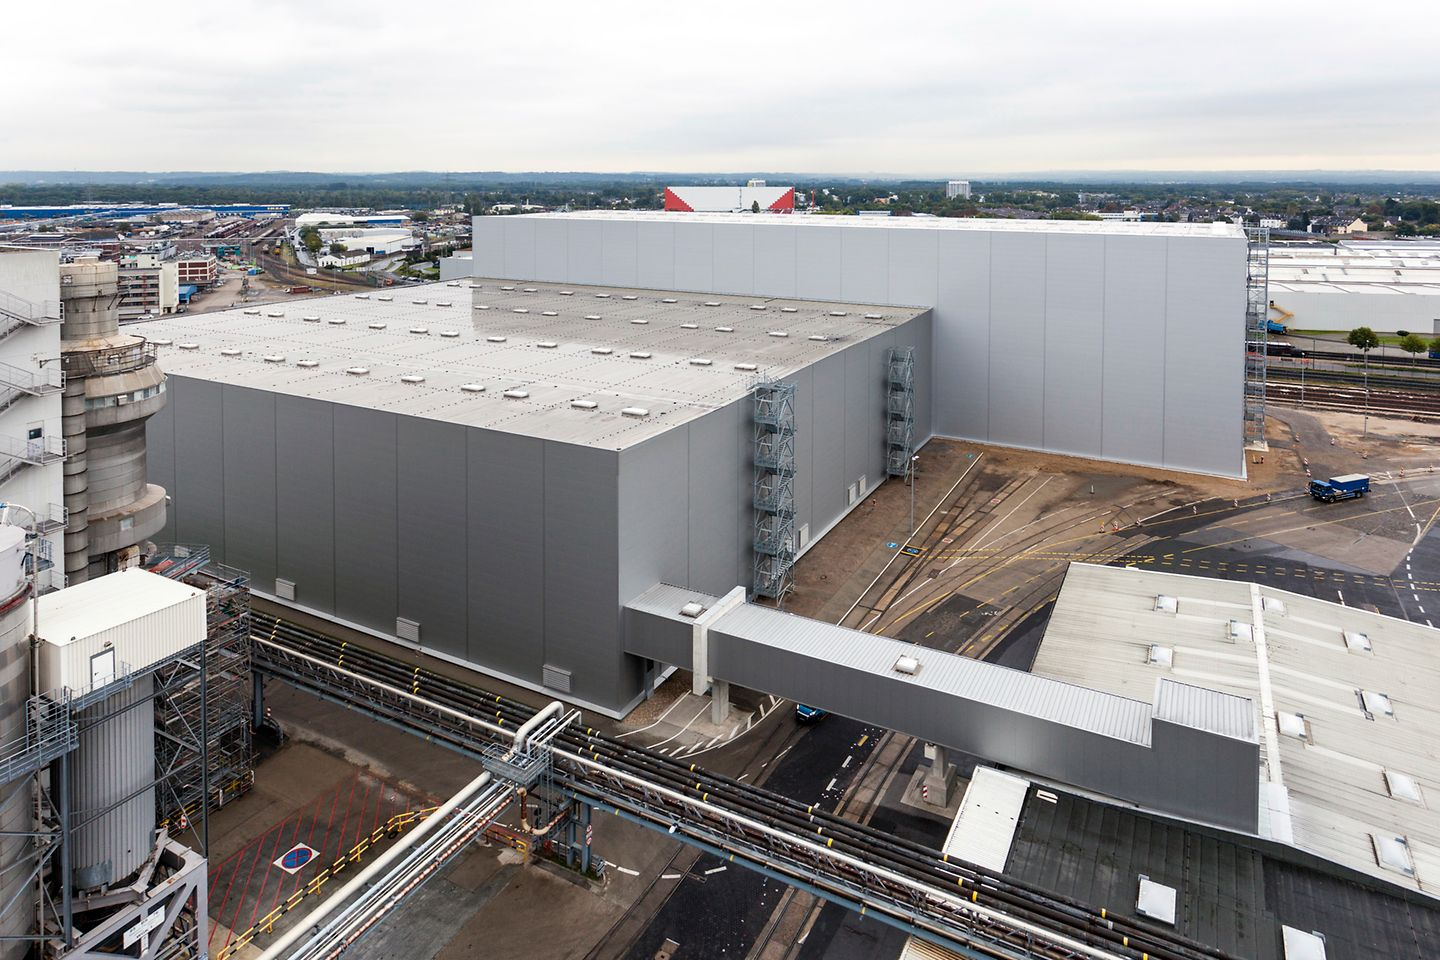 Henkel has expanded its high-bay warehouse at its headquarters in Düsseldorf